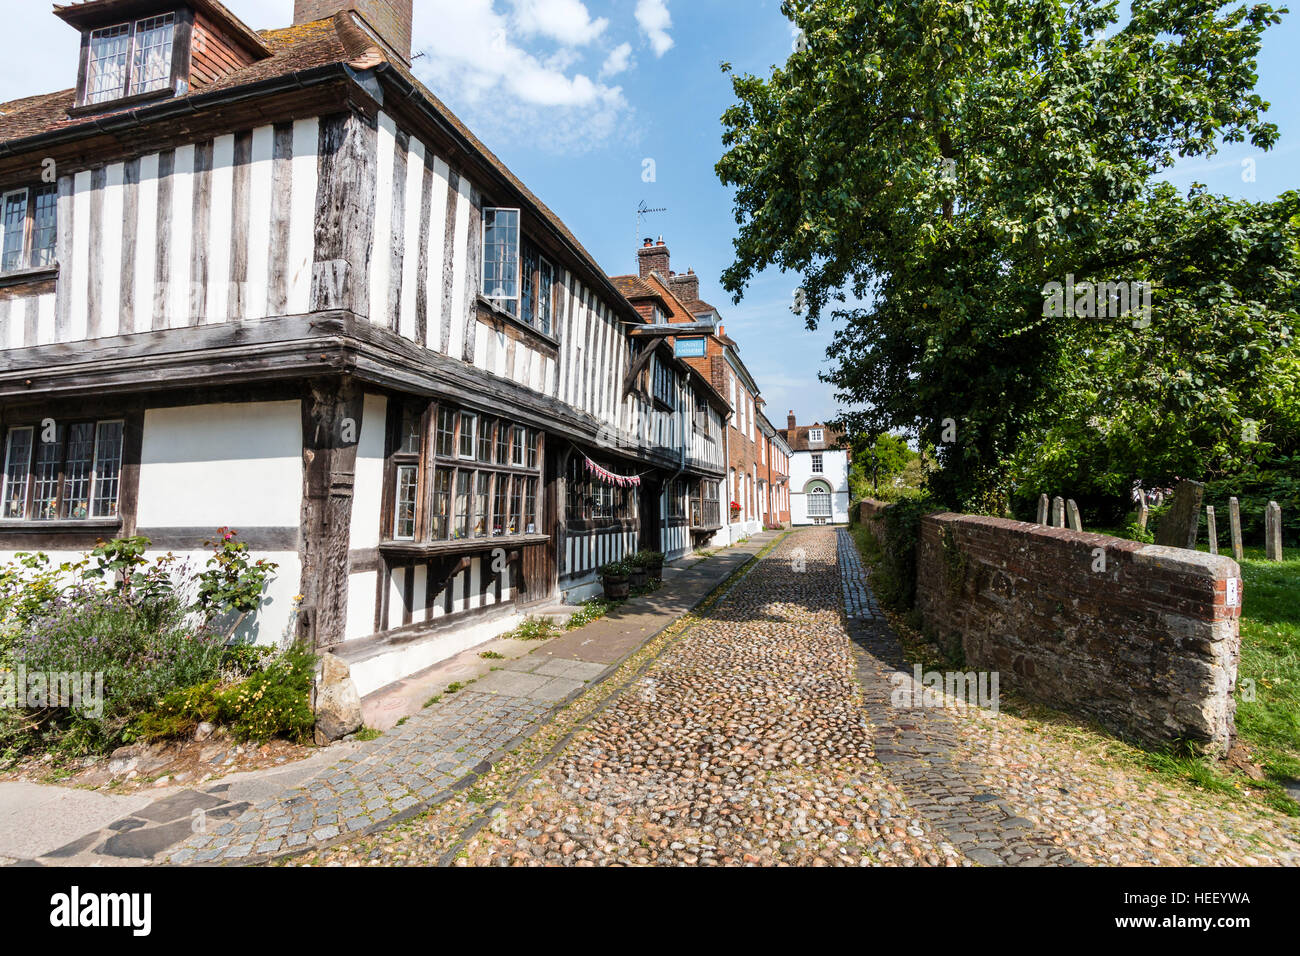 England, Rye. Church Square, St Anthony's, timber framed late medieval Tudor wealthy merchant's house, 16th - Stock Image